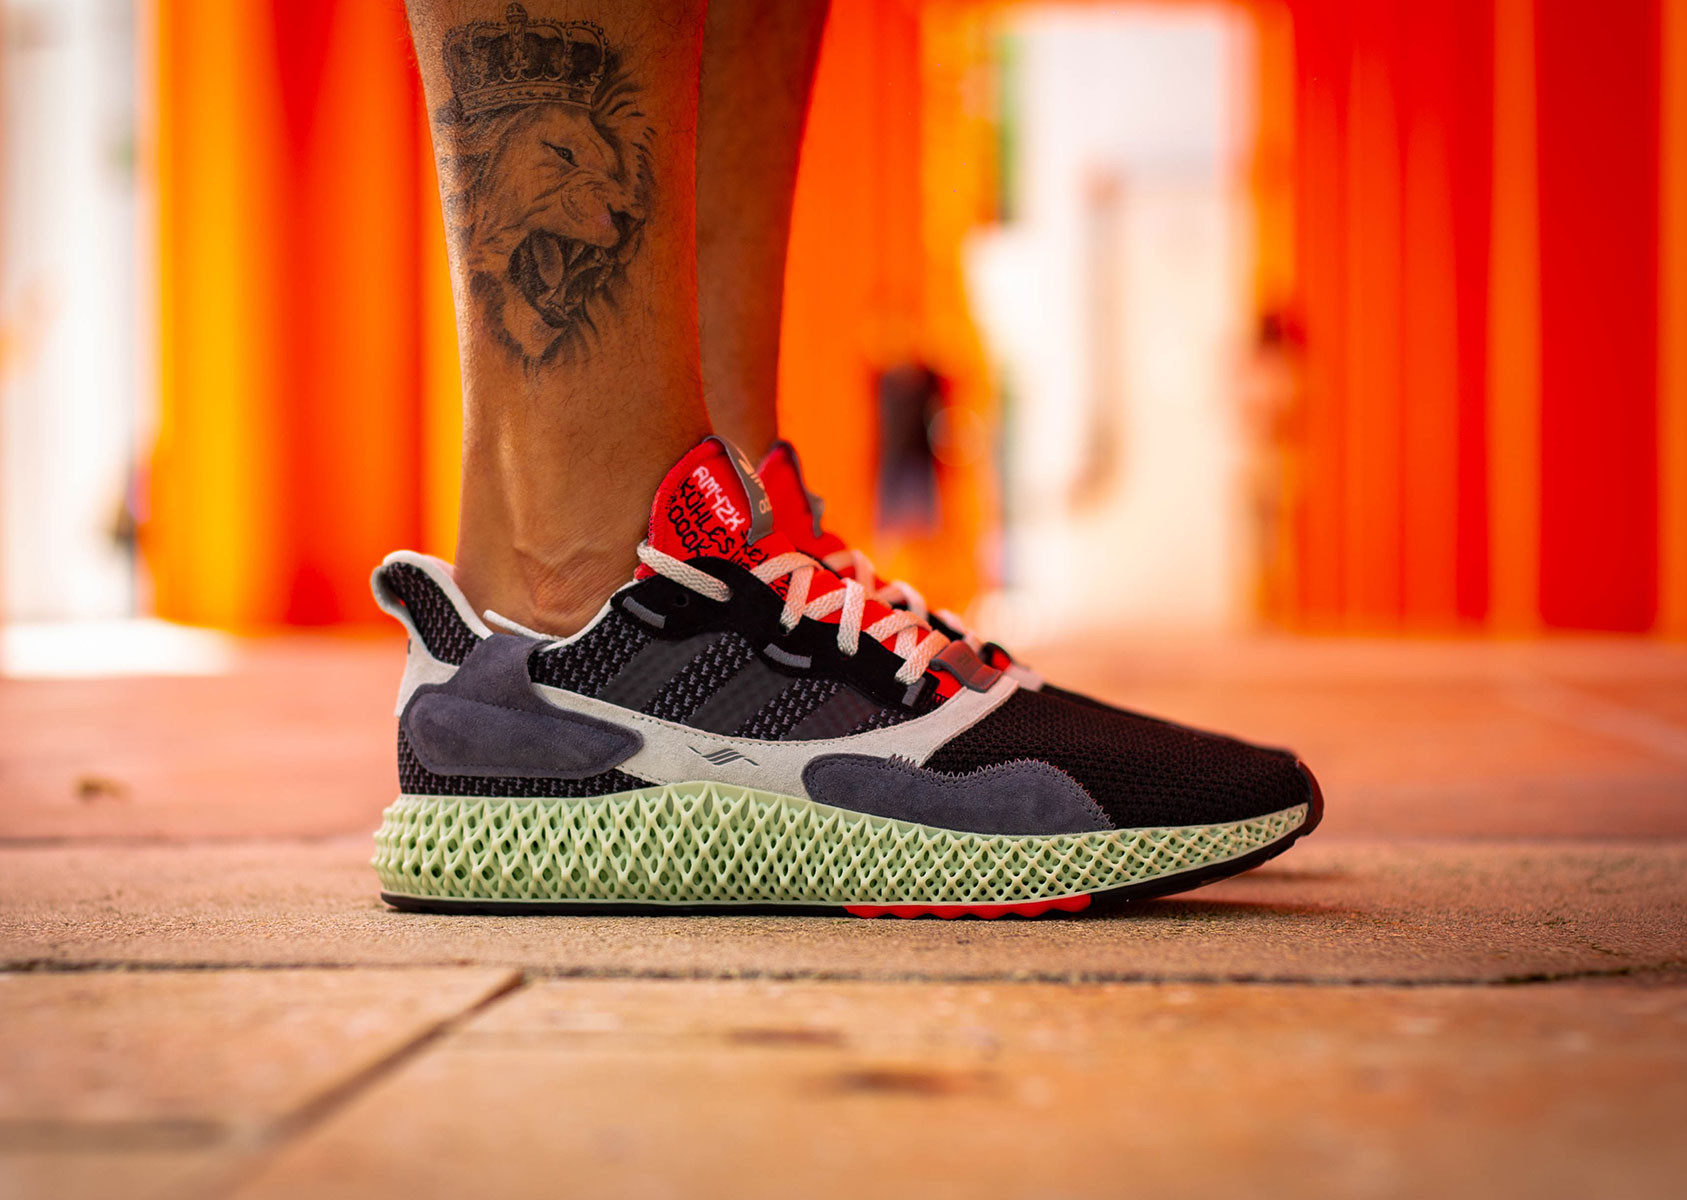 The adidas ZX 4000 4D 'Black Onix' Is